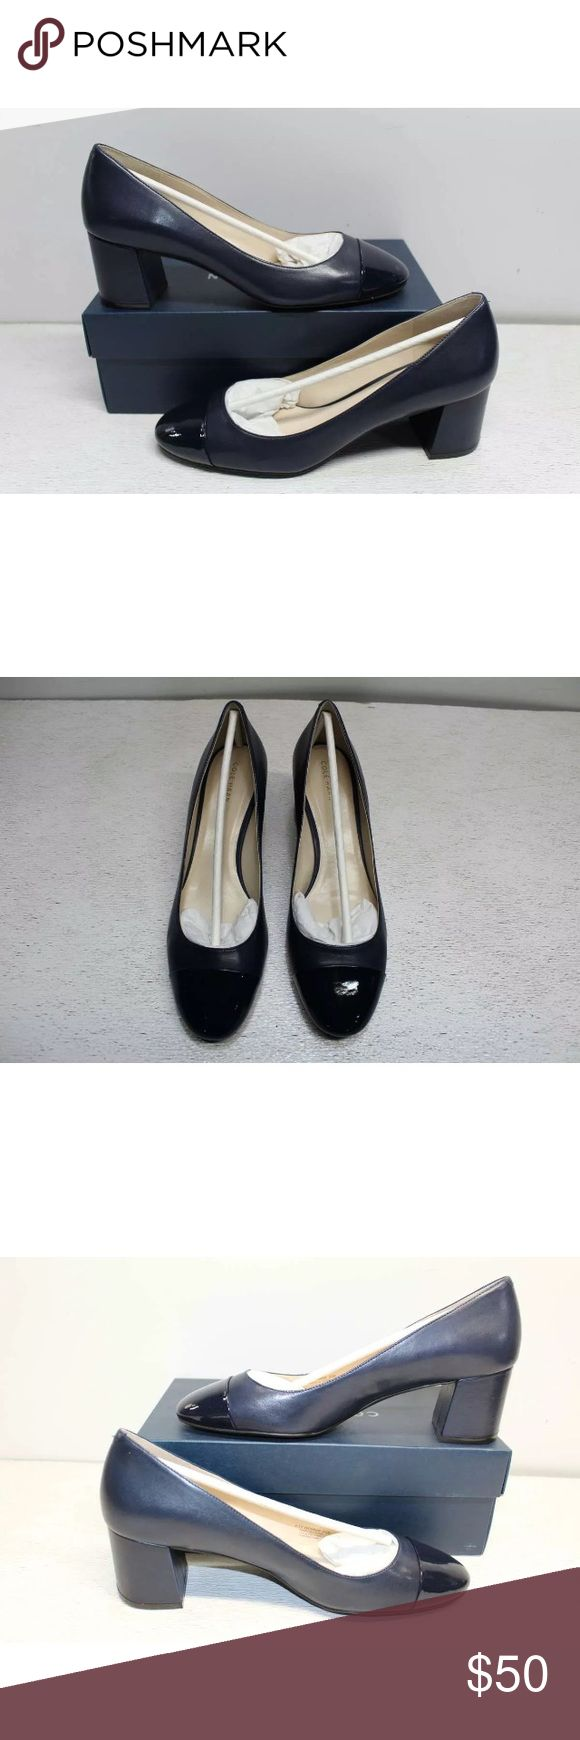 Cole Haan pumps shoes 9.5 blue Dawna Grand Pump 5mm. Block chunky heel. New with box. Bought for myself; but I need larger size. Cole Haan Shoes Heels